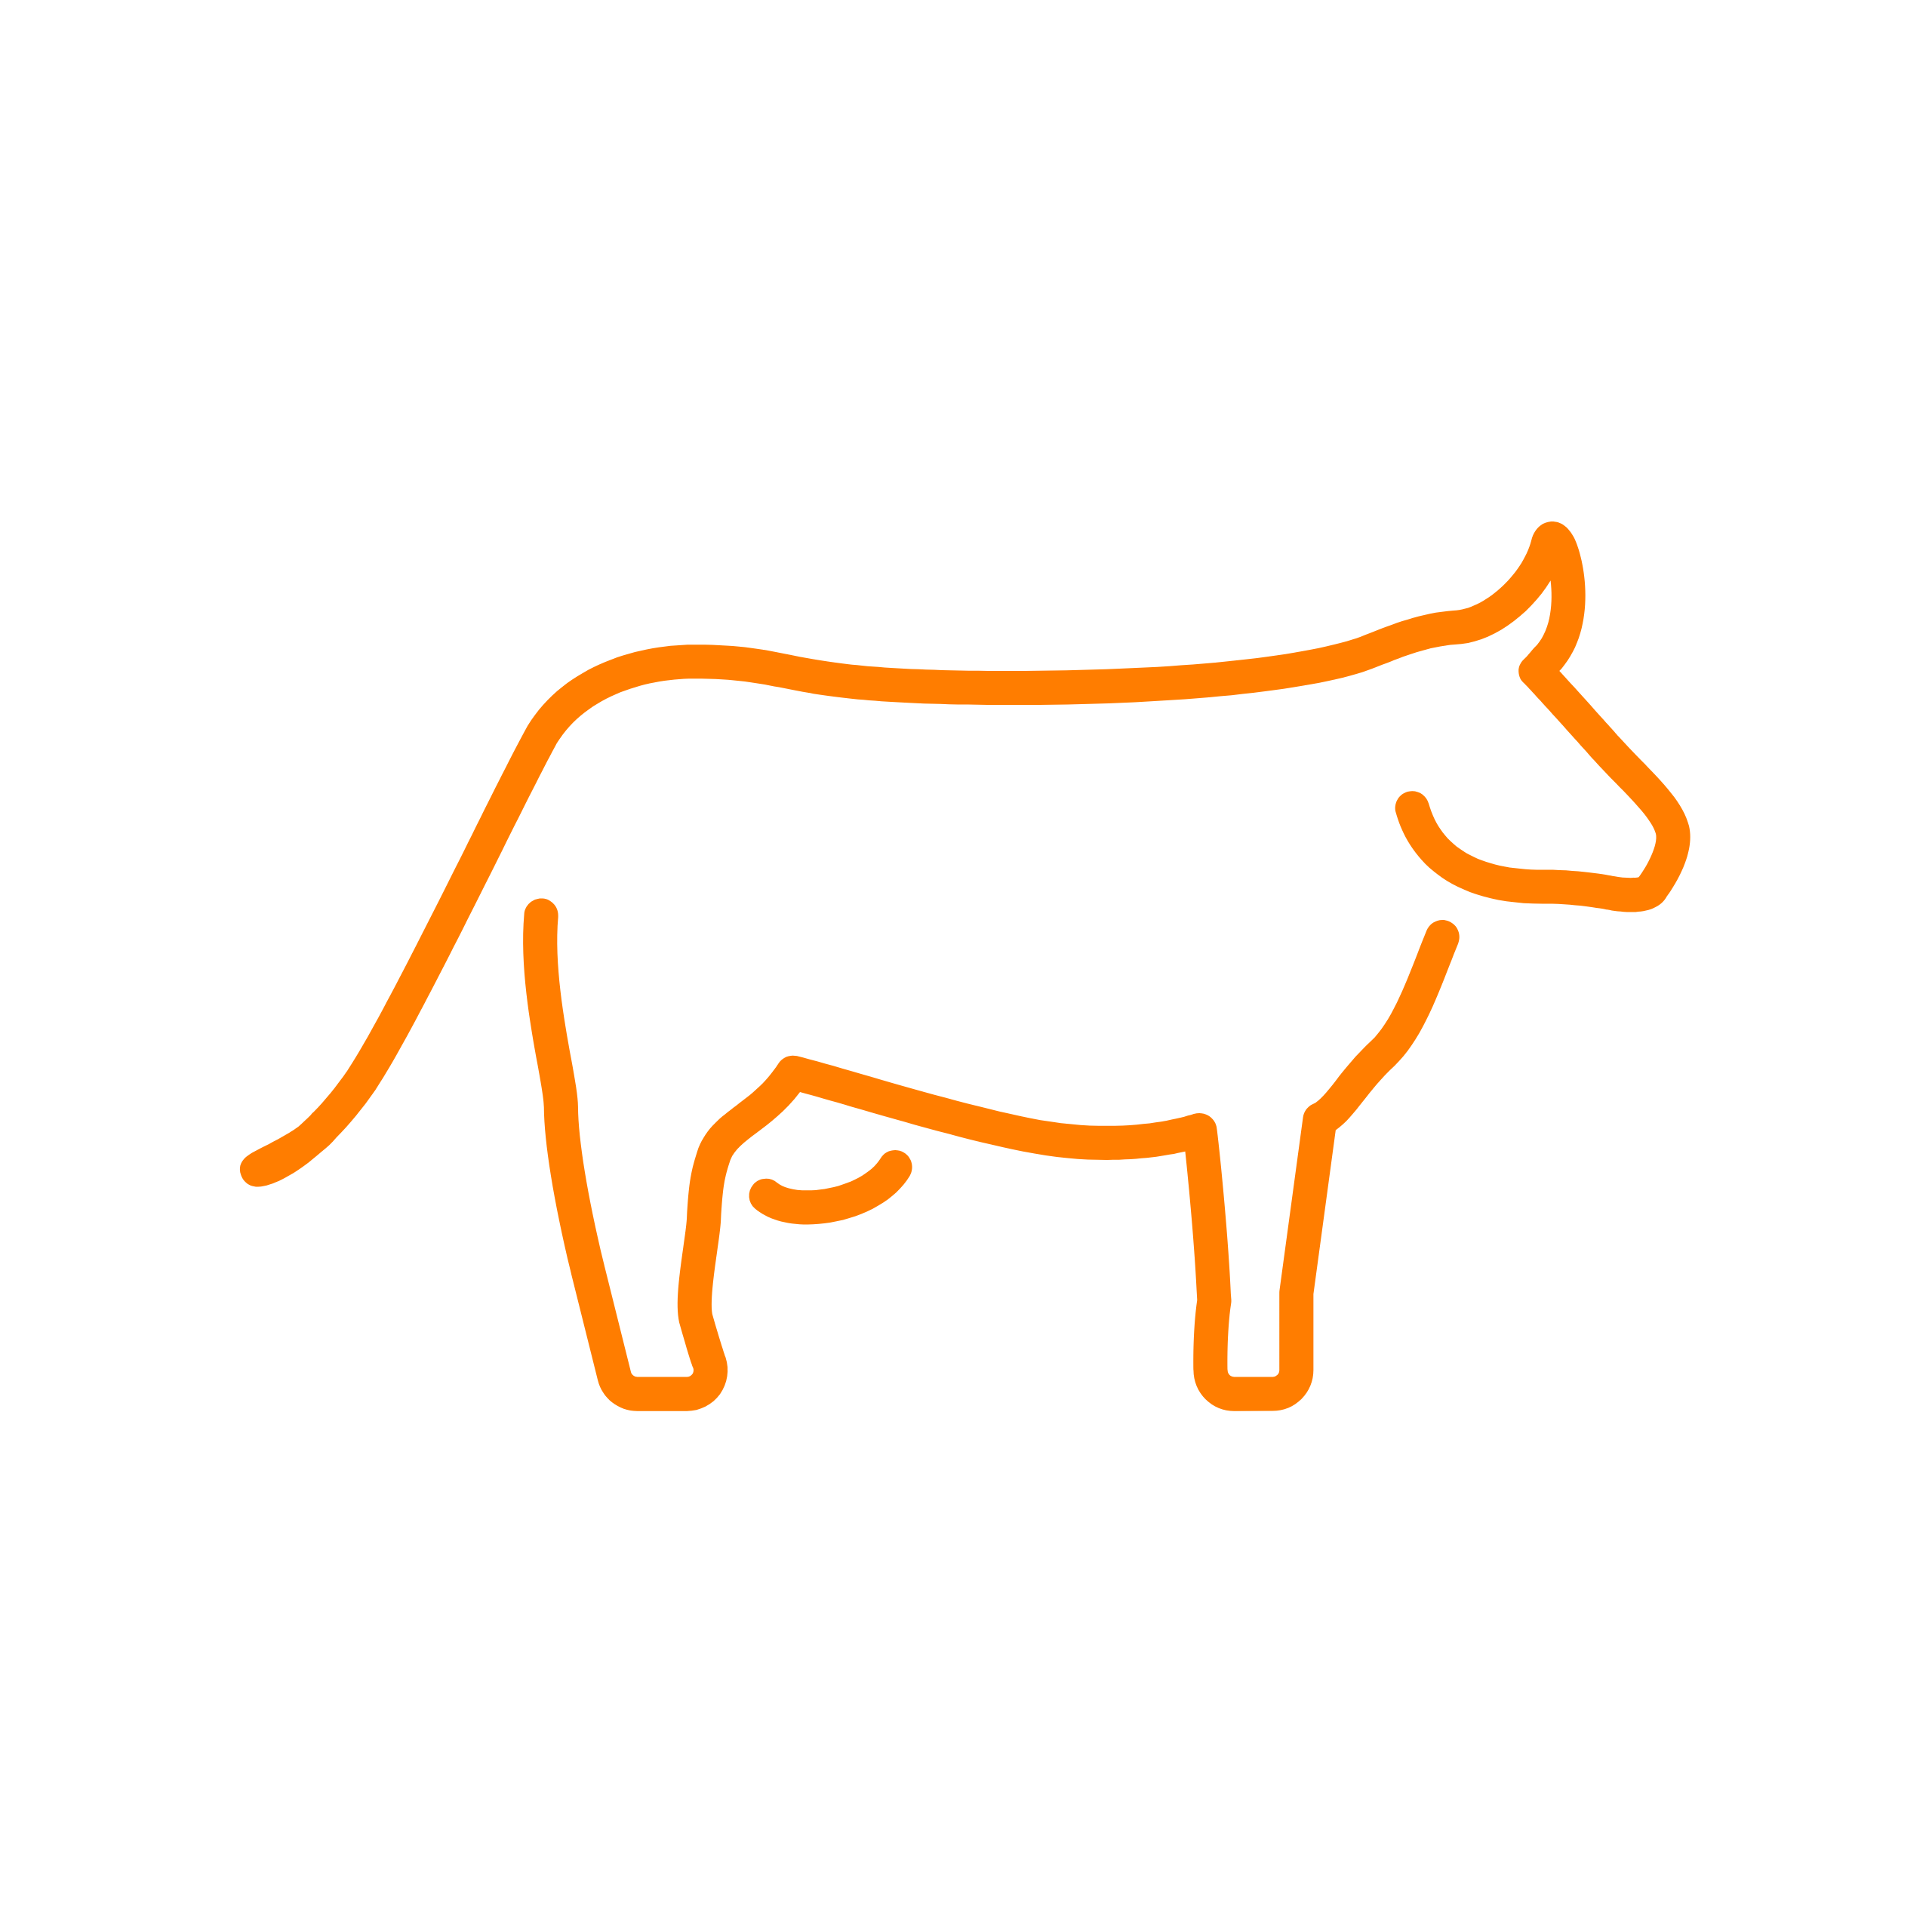 Cow clipart branding. Orange cattle is a